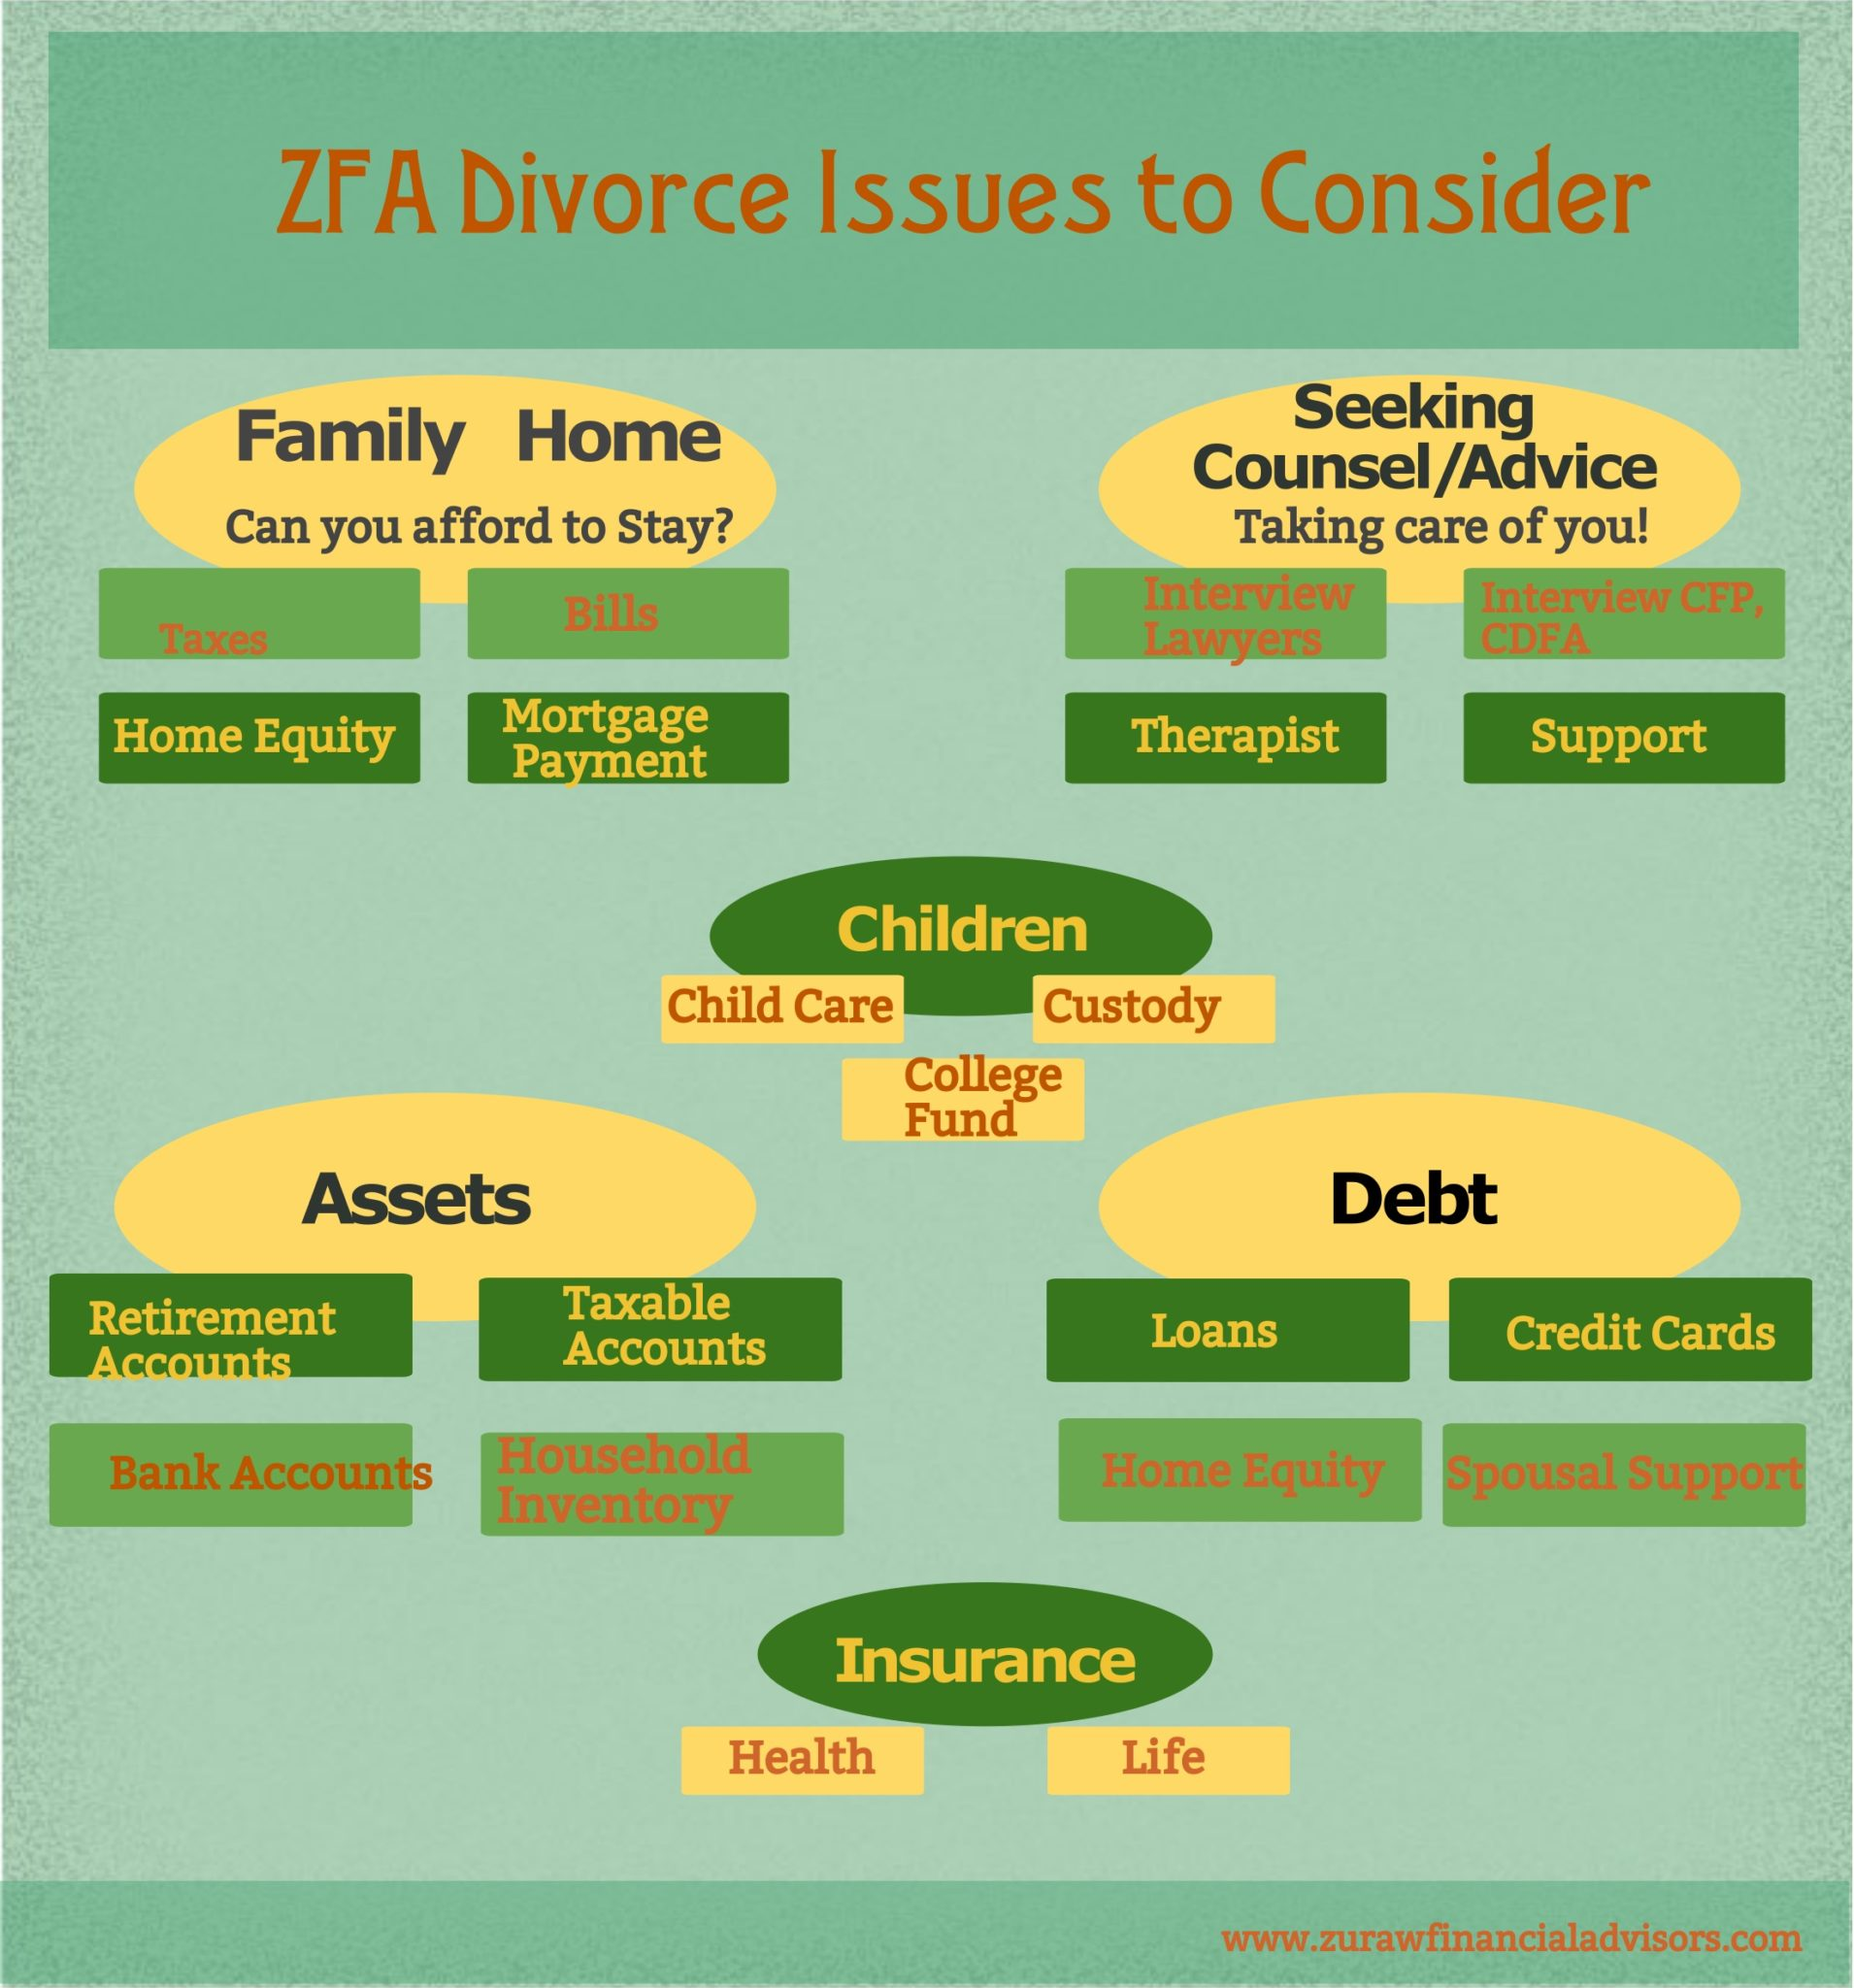 Z is for ZFA's Divorce Issues to Consider